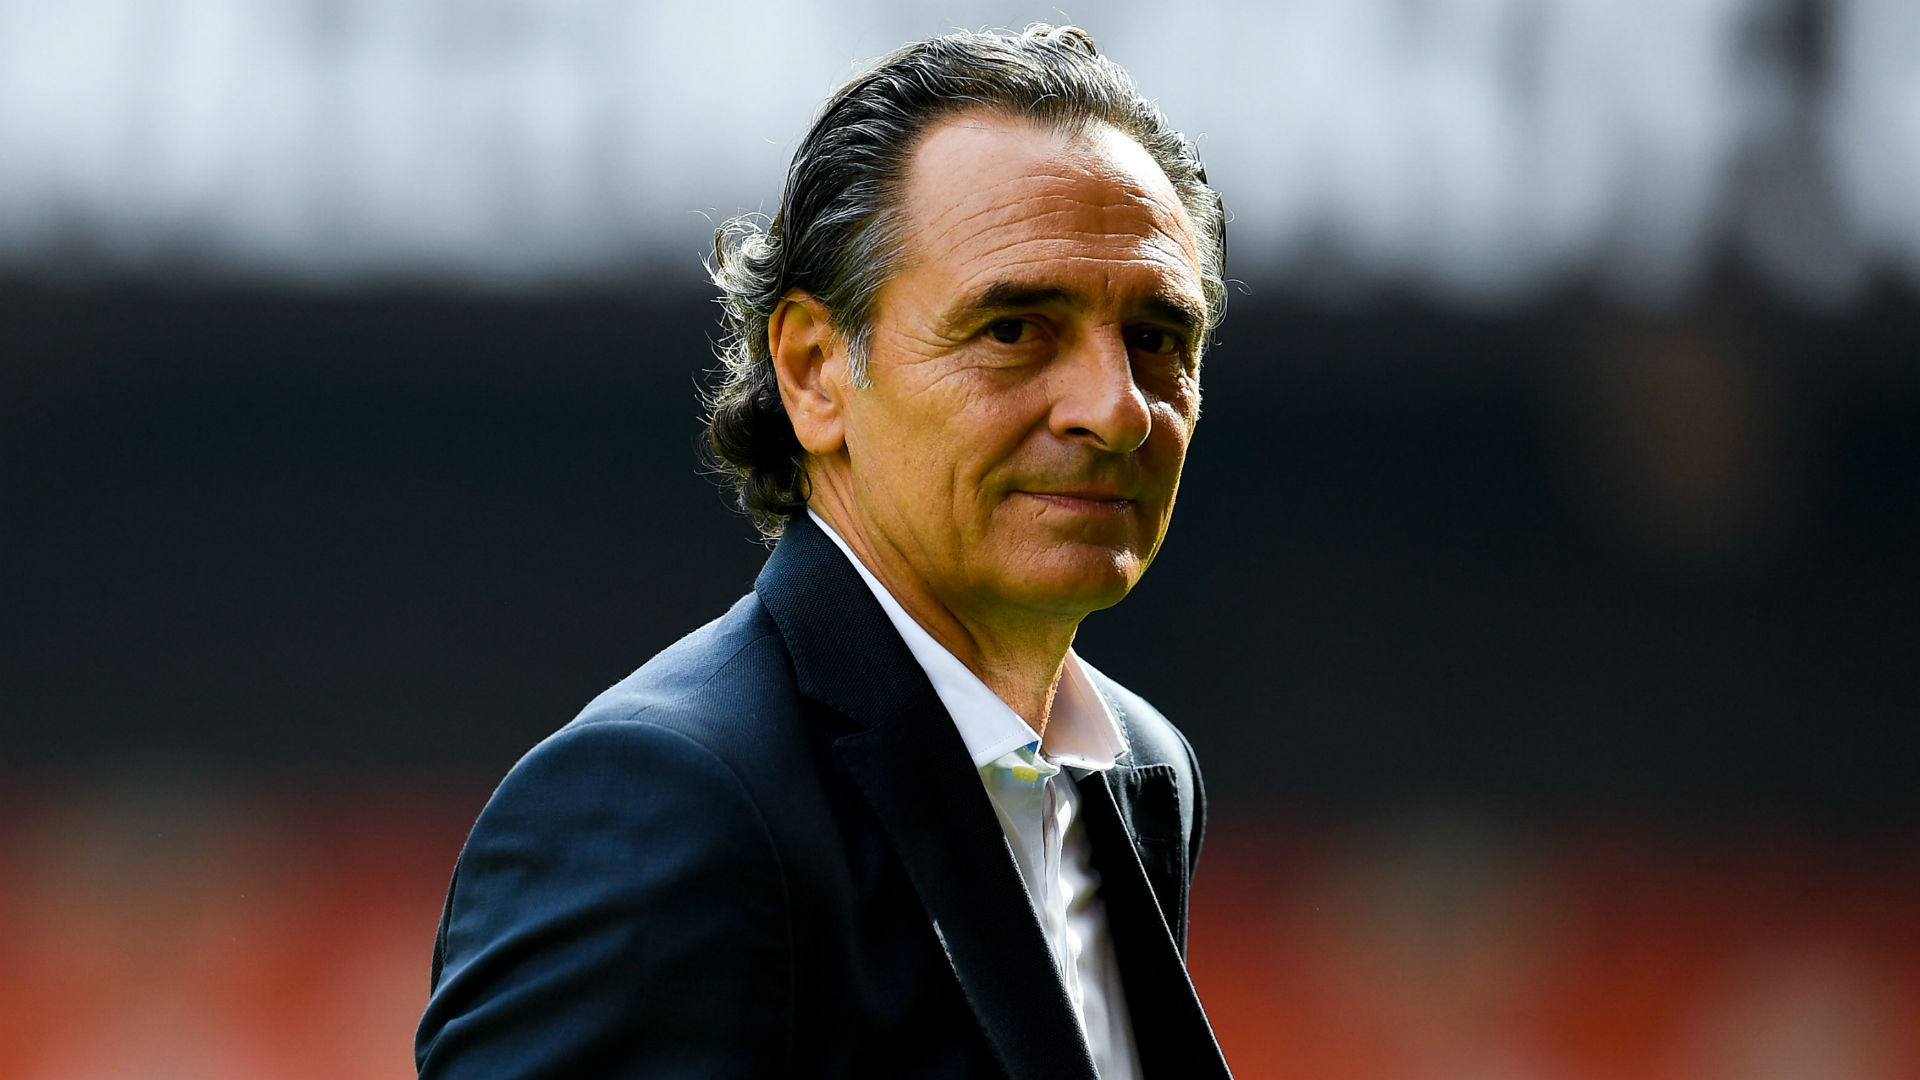 Valencia's Prandelli resigns after 10 games